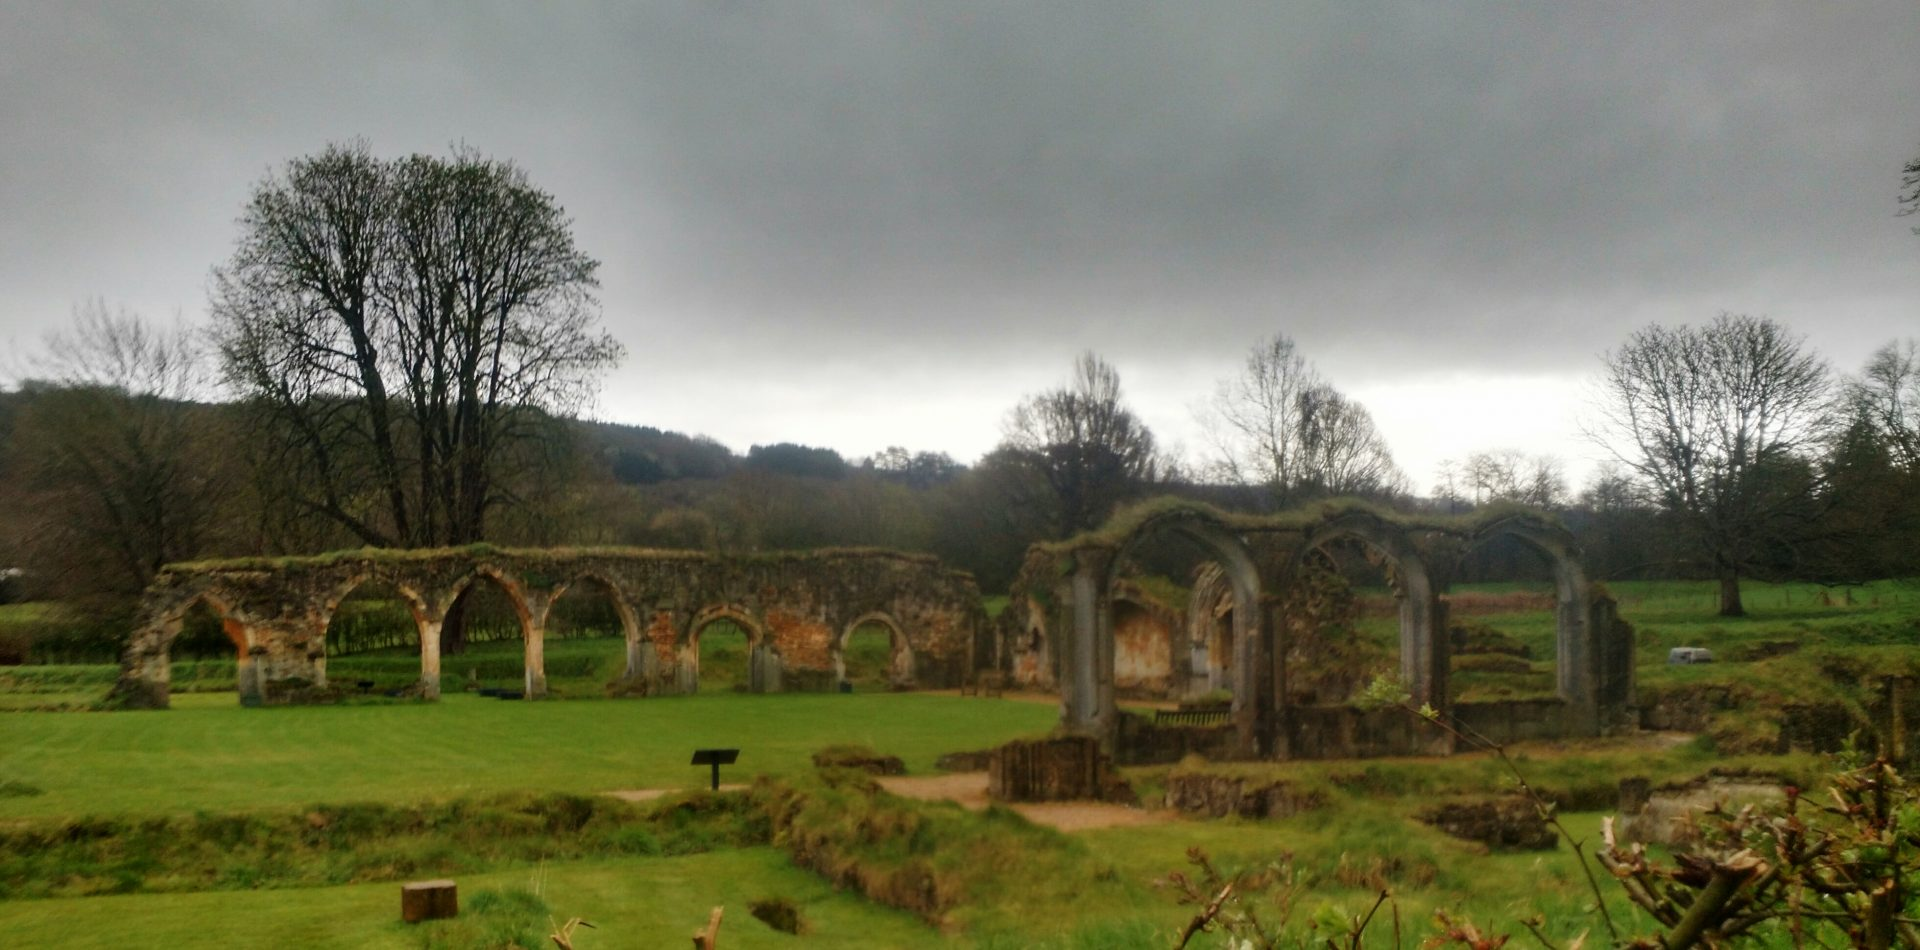 Hailes Abbey Ruins in the Rain near Winchcombe, Cotswolds